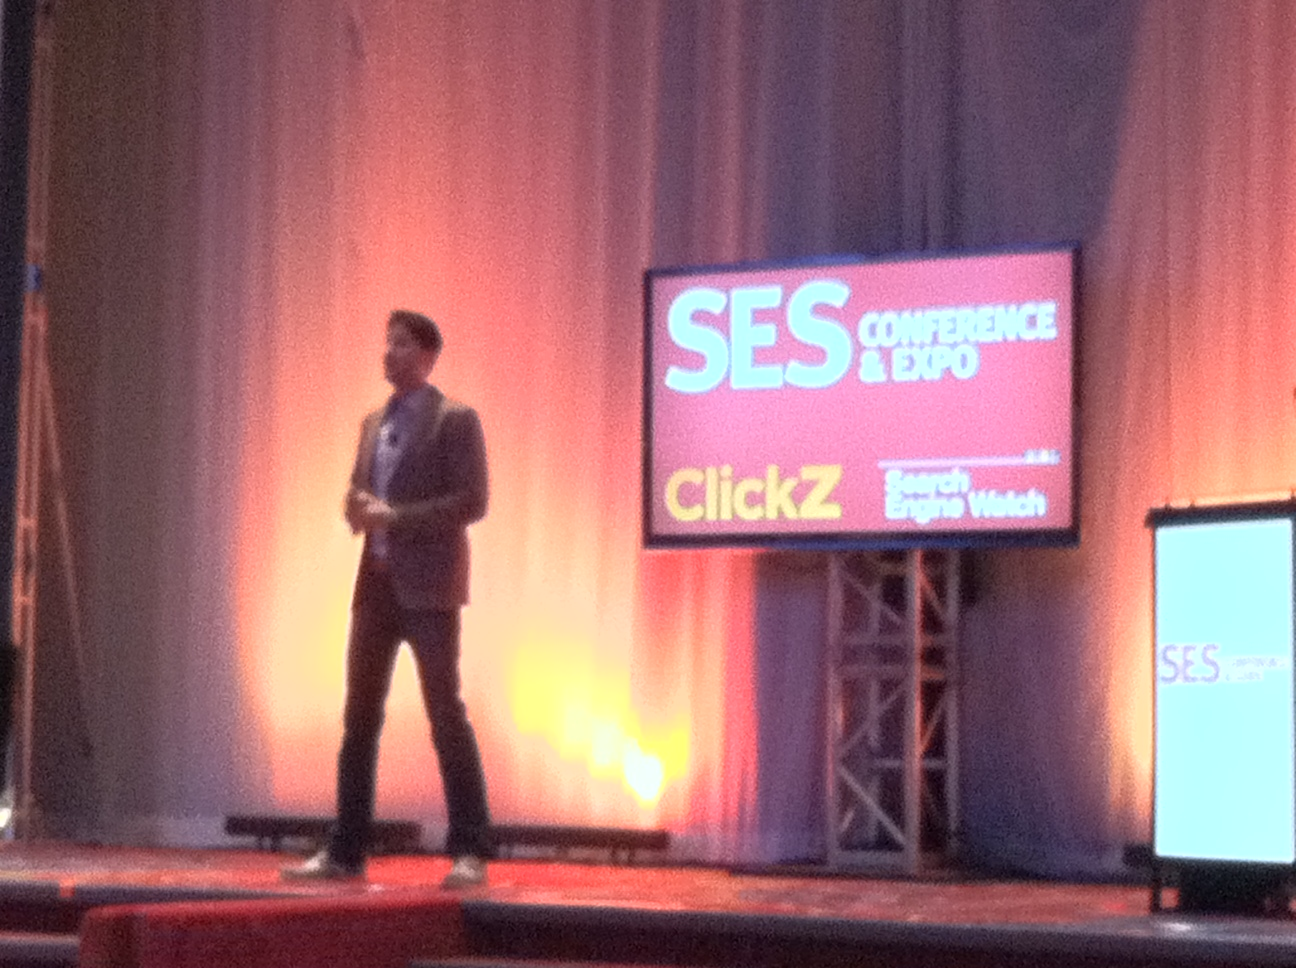 Hill Holliday's senior VP and director of social media Mike Proulx delivers a resounding keynote speech at SES NY.